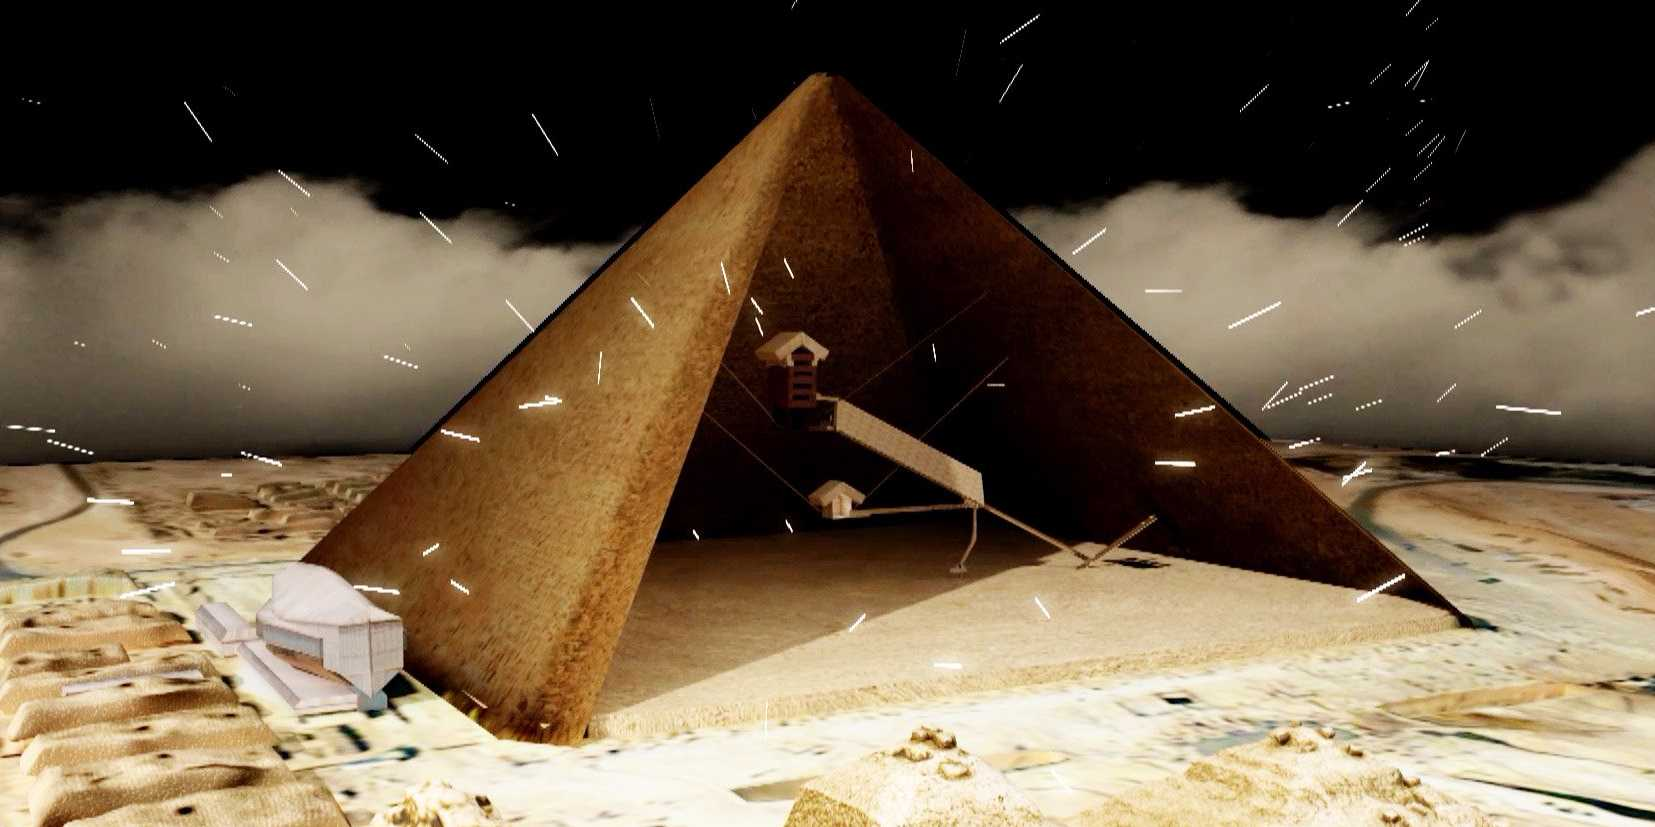 Explore History Revisits The Mysteries Hidden within The Pyramids at Giza